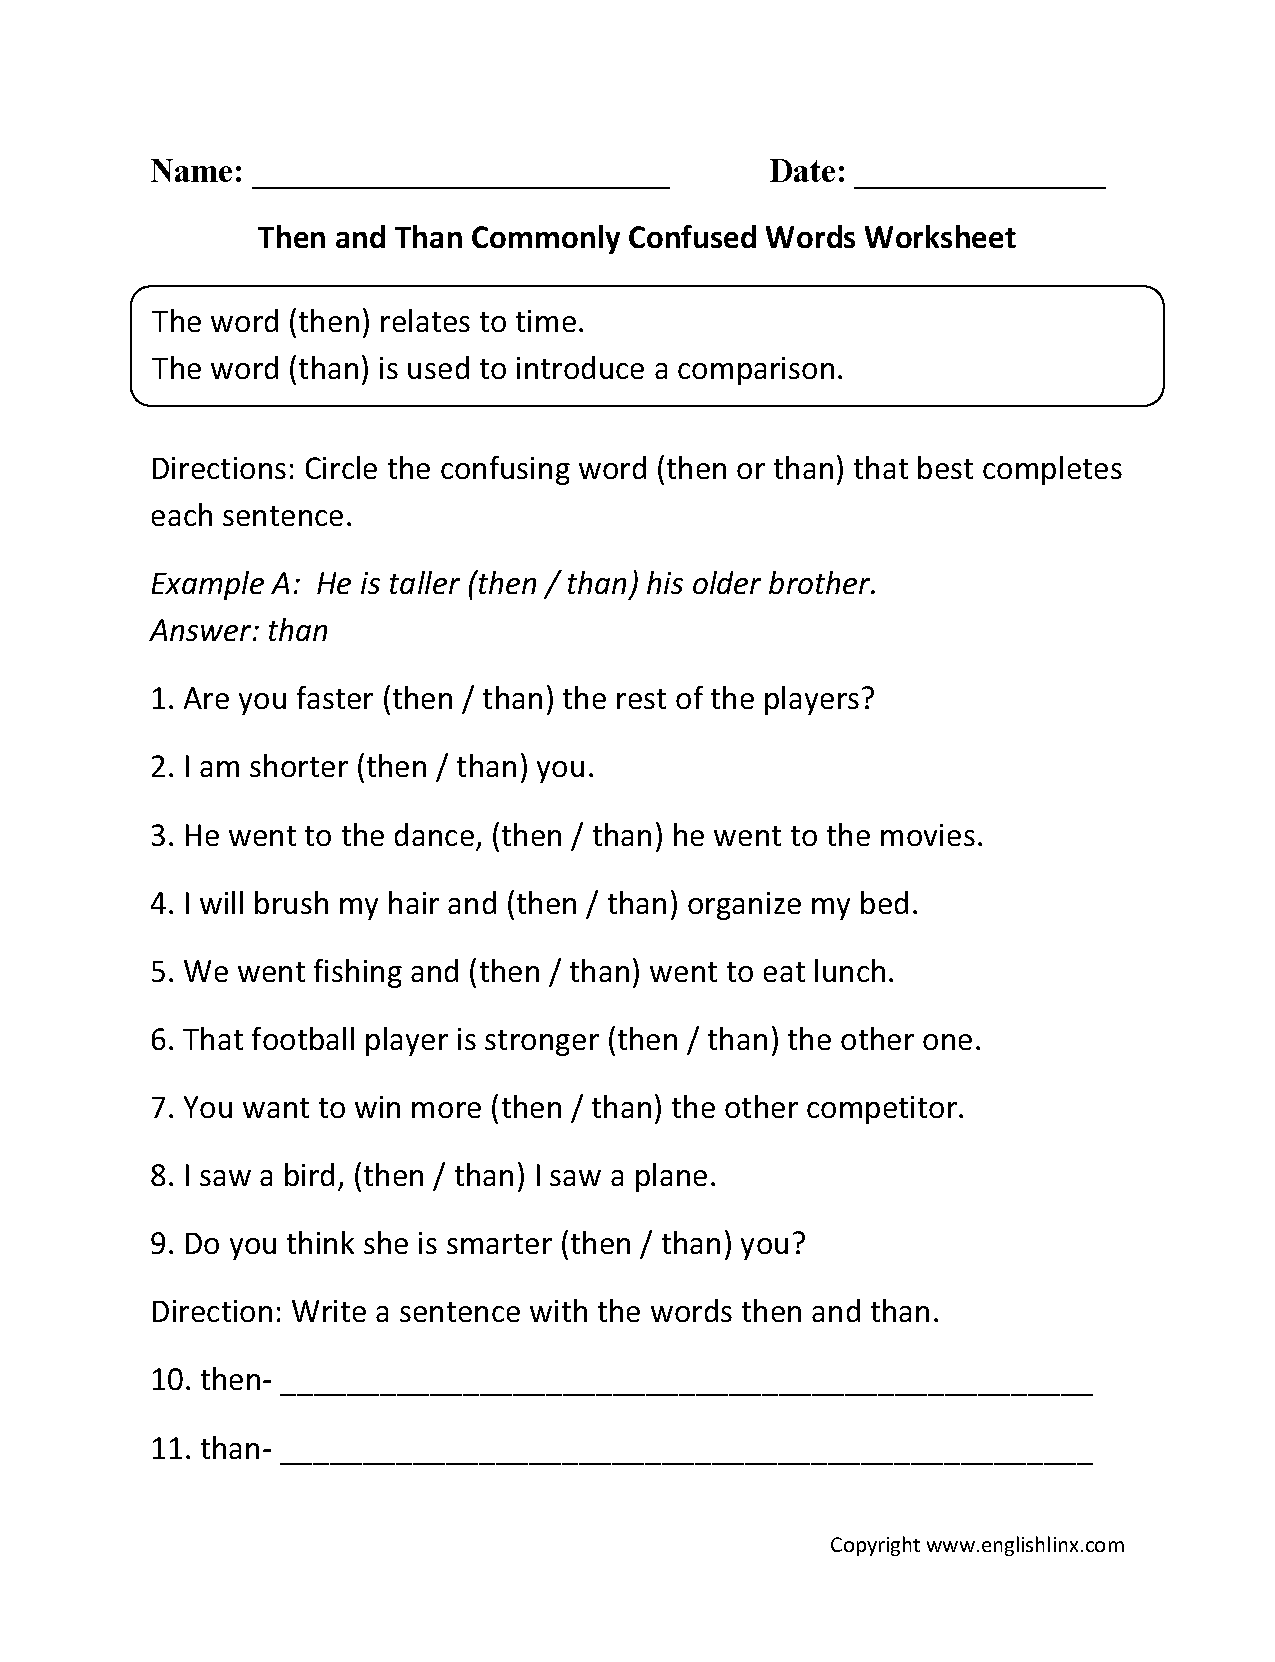 Worksheet Homophones Worksheets Pdf commonly confused words worksheets then vs than worksheets